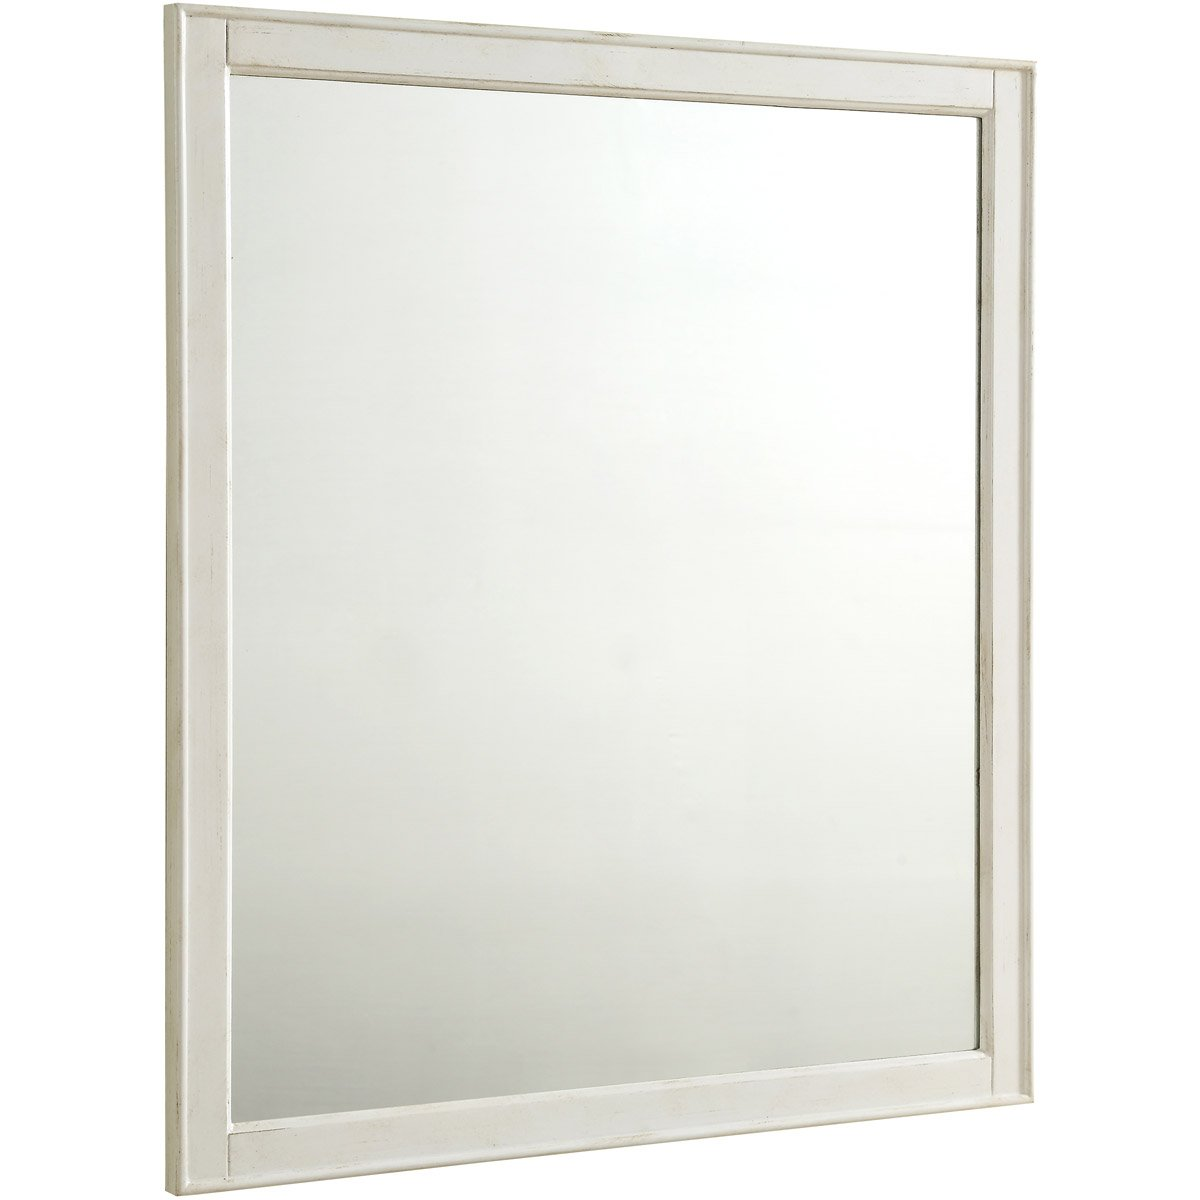 Lexington 32 X 36 Traditional Mirror - Antique White Finish (Vm13032Aw) Mirror